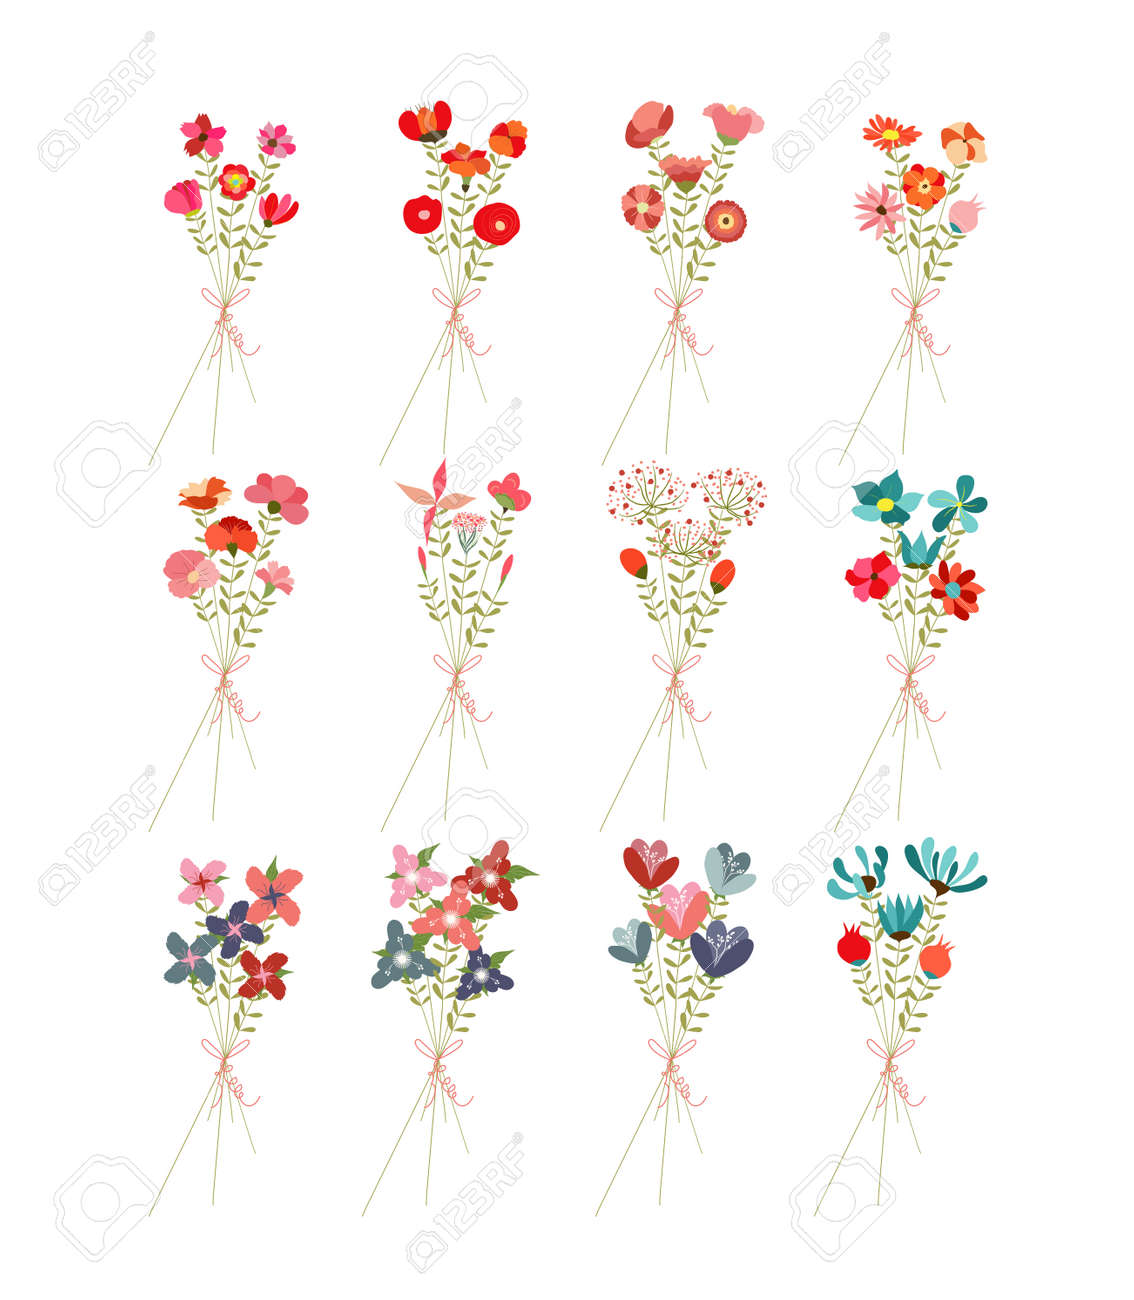 Flower Bouquets Clip Art Royalty Free Cliparts Vectors And Stock